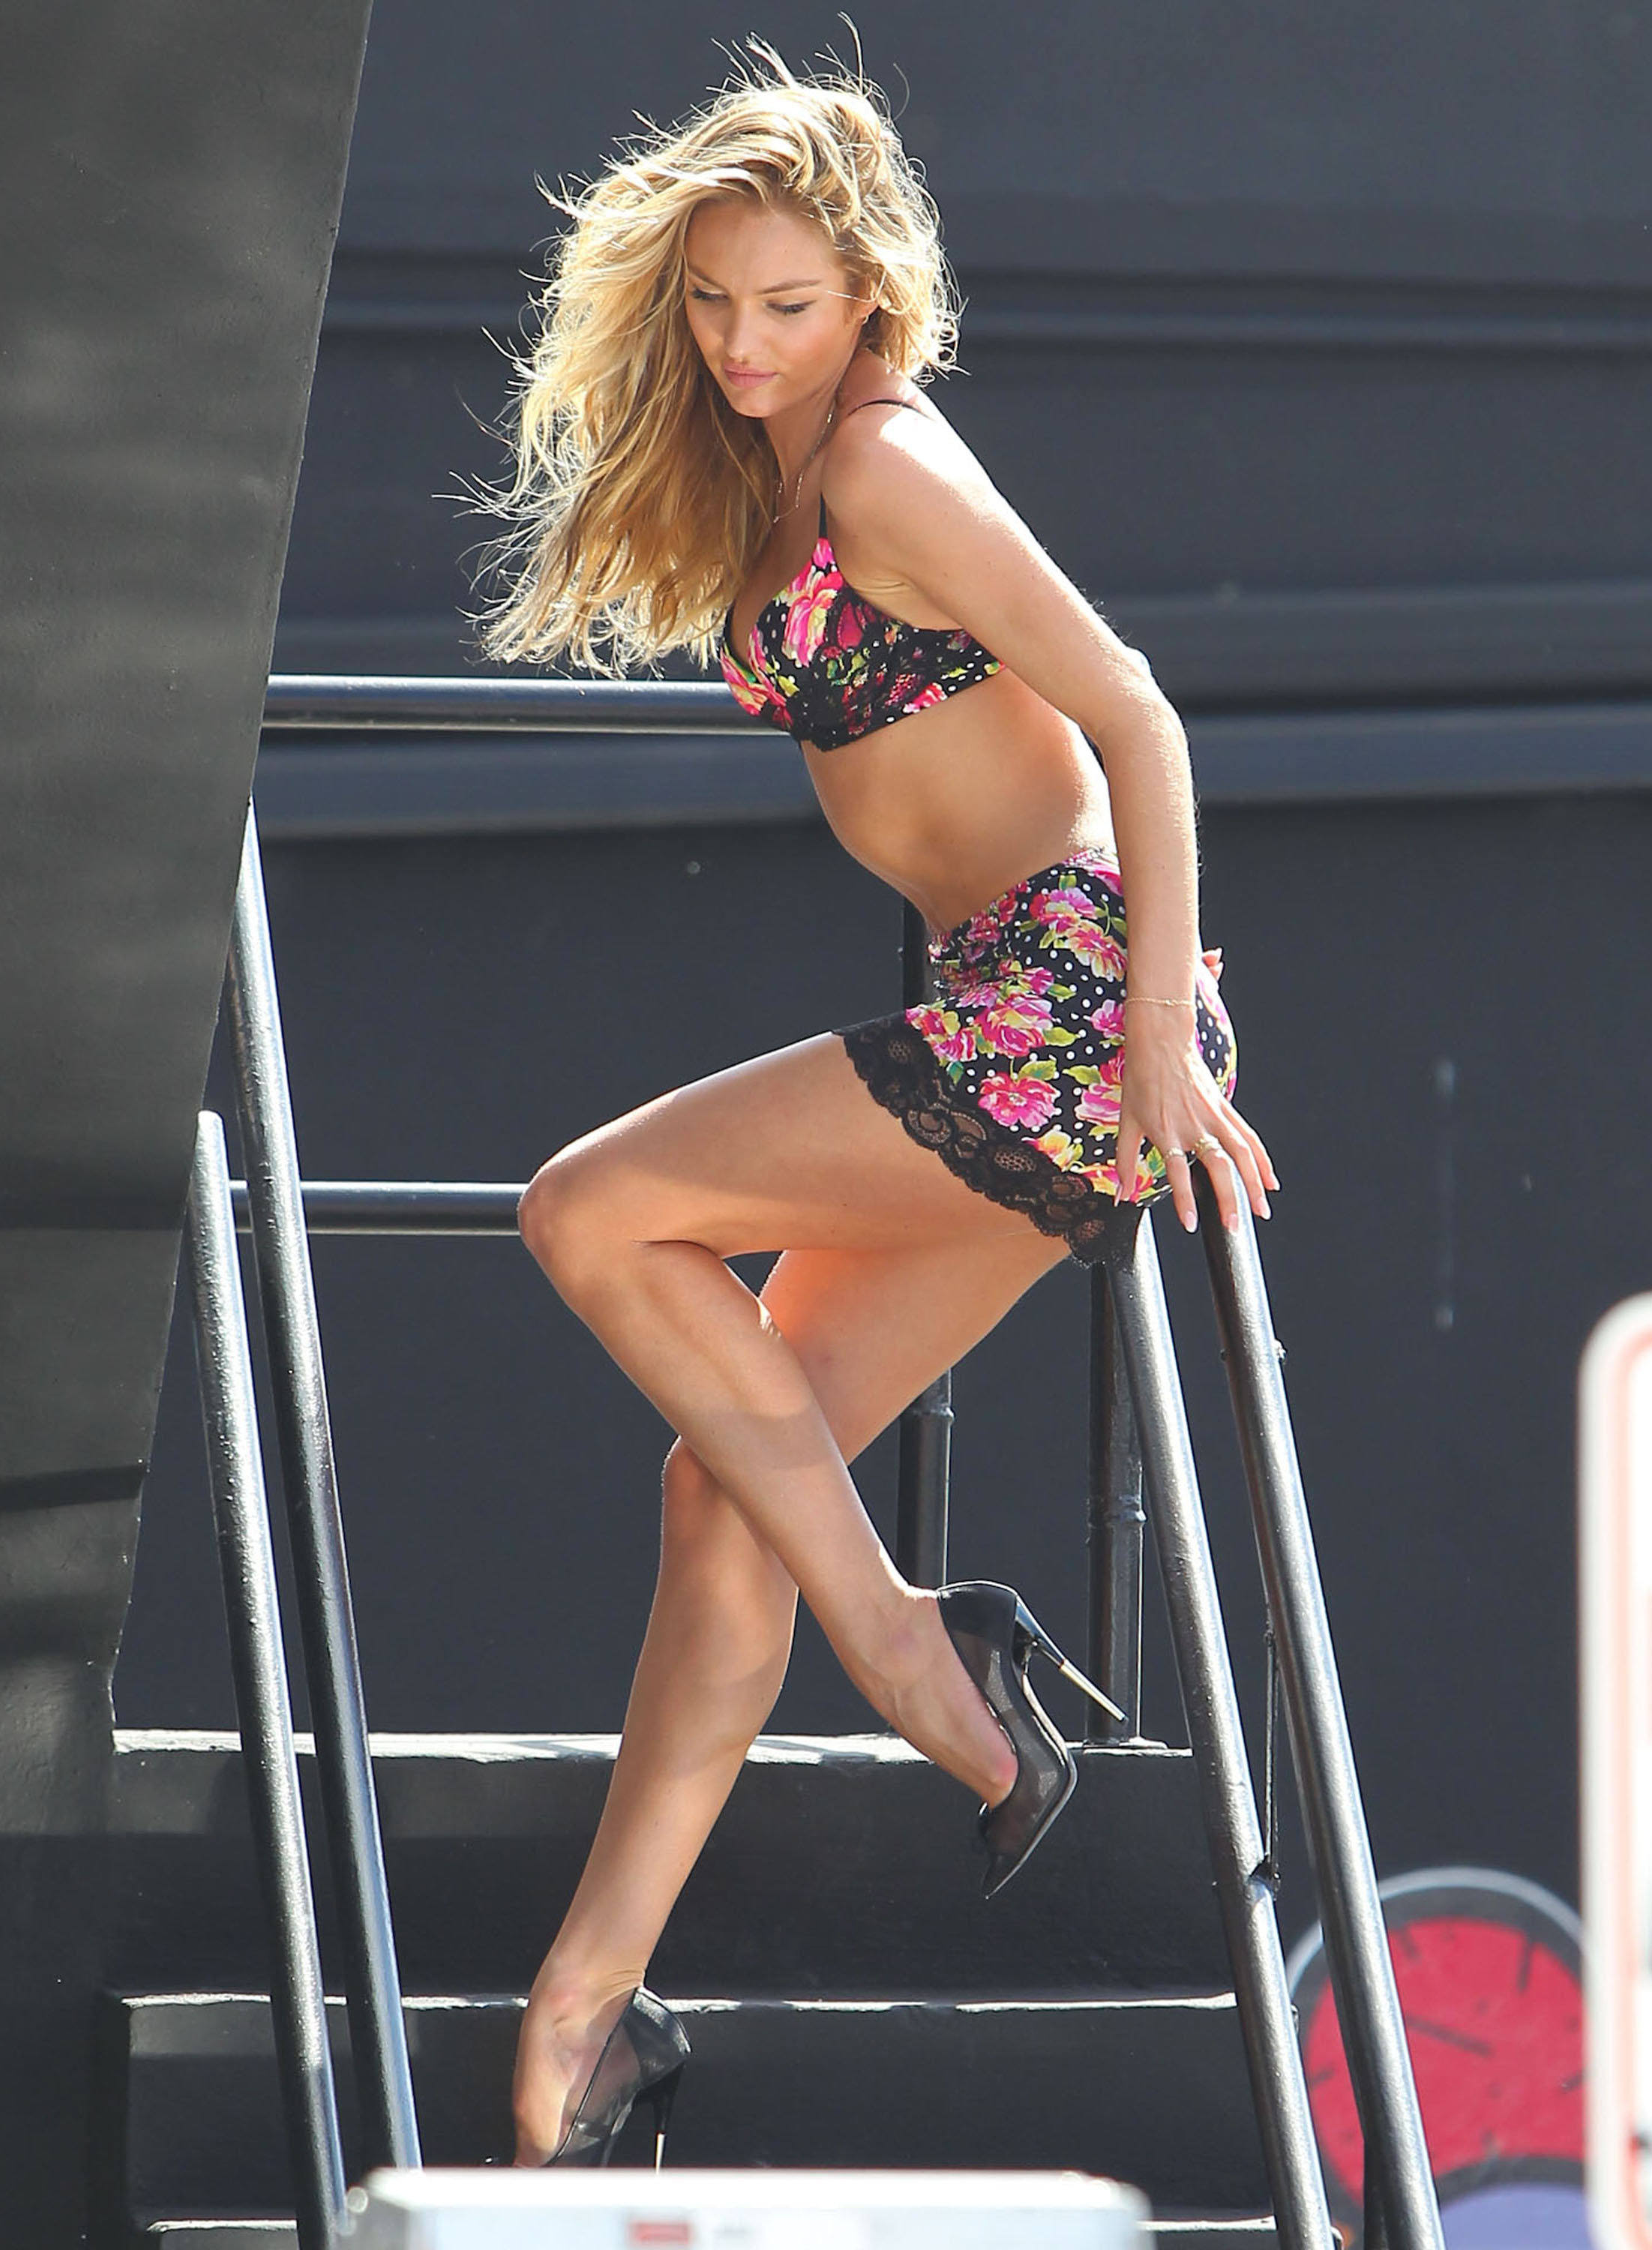 Candice Swanepoel posed on a staircase.